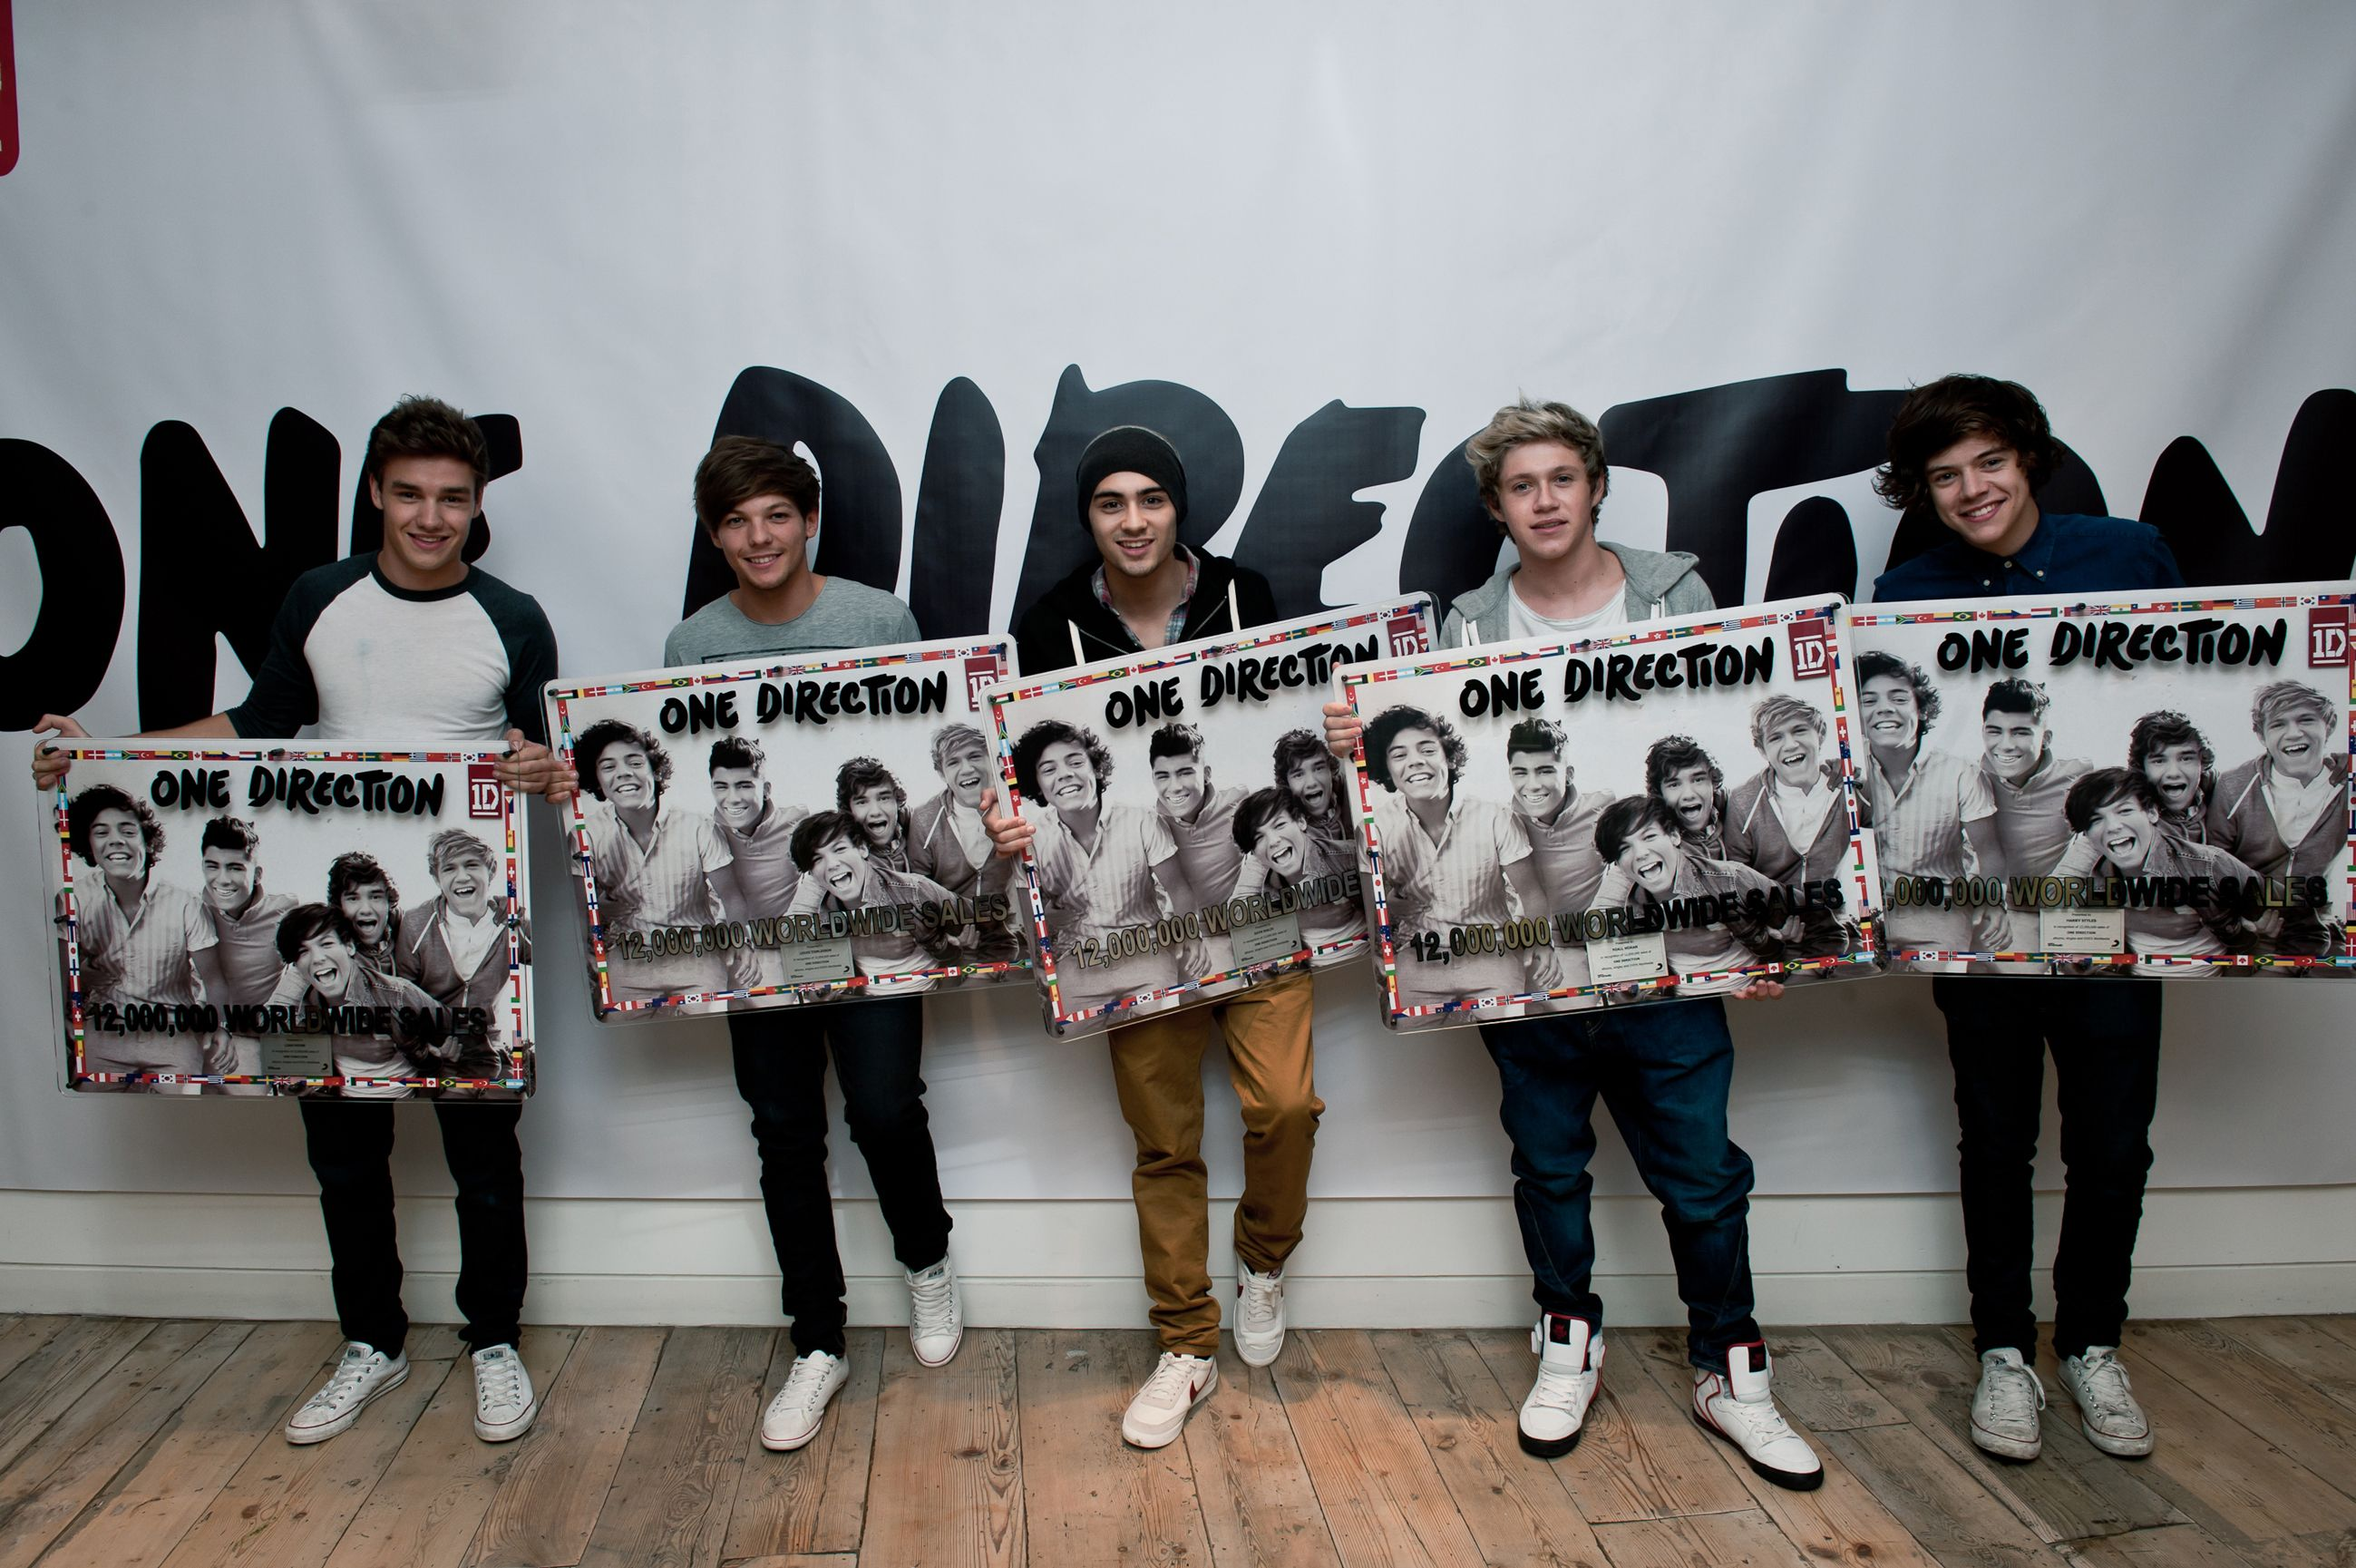 One Direction Reached a Phenomenal 12M Sales in Less Than a Year